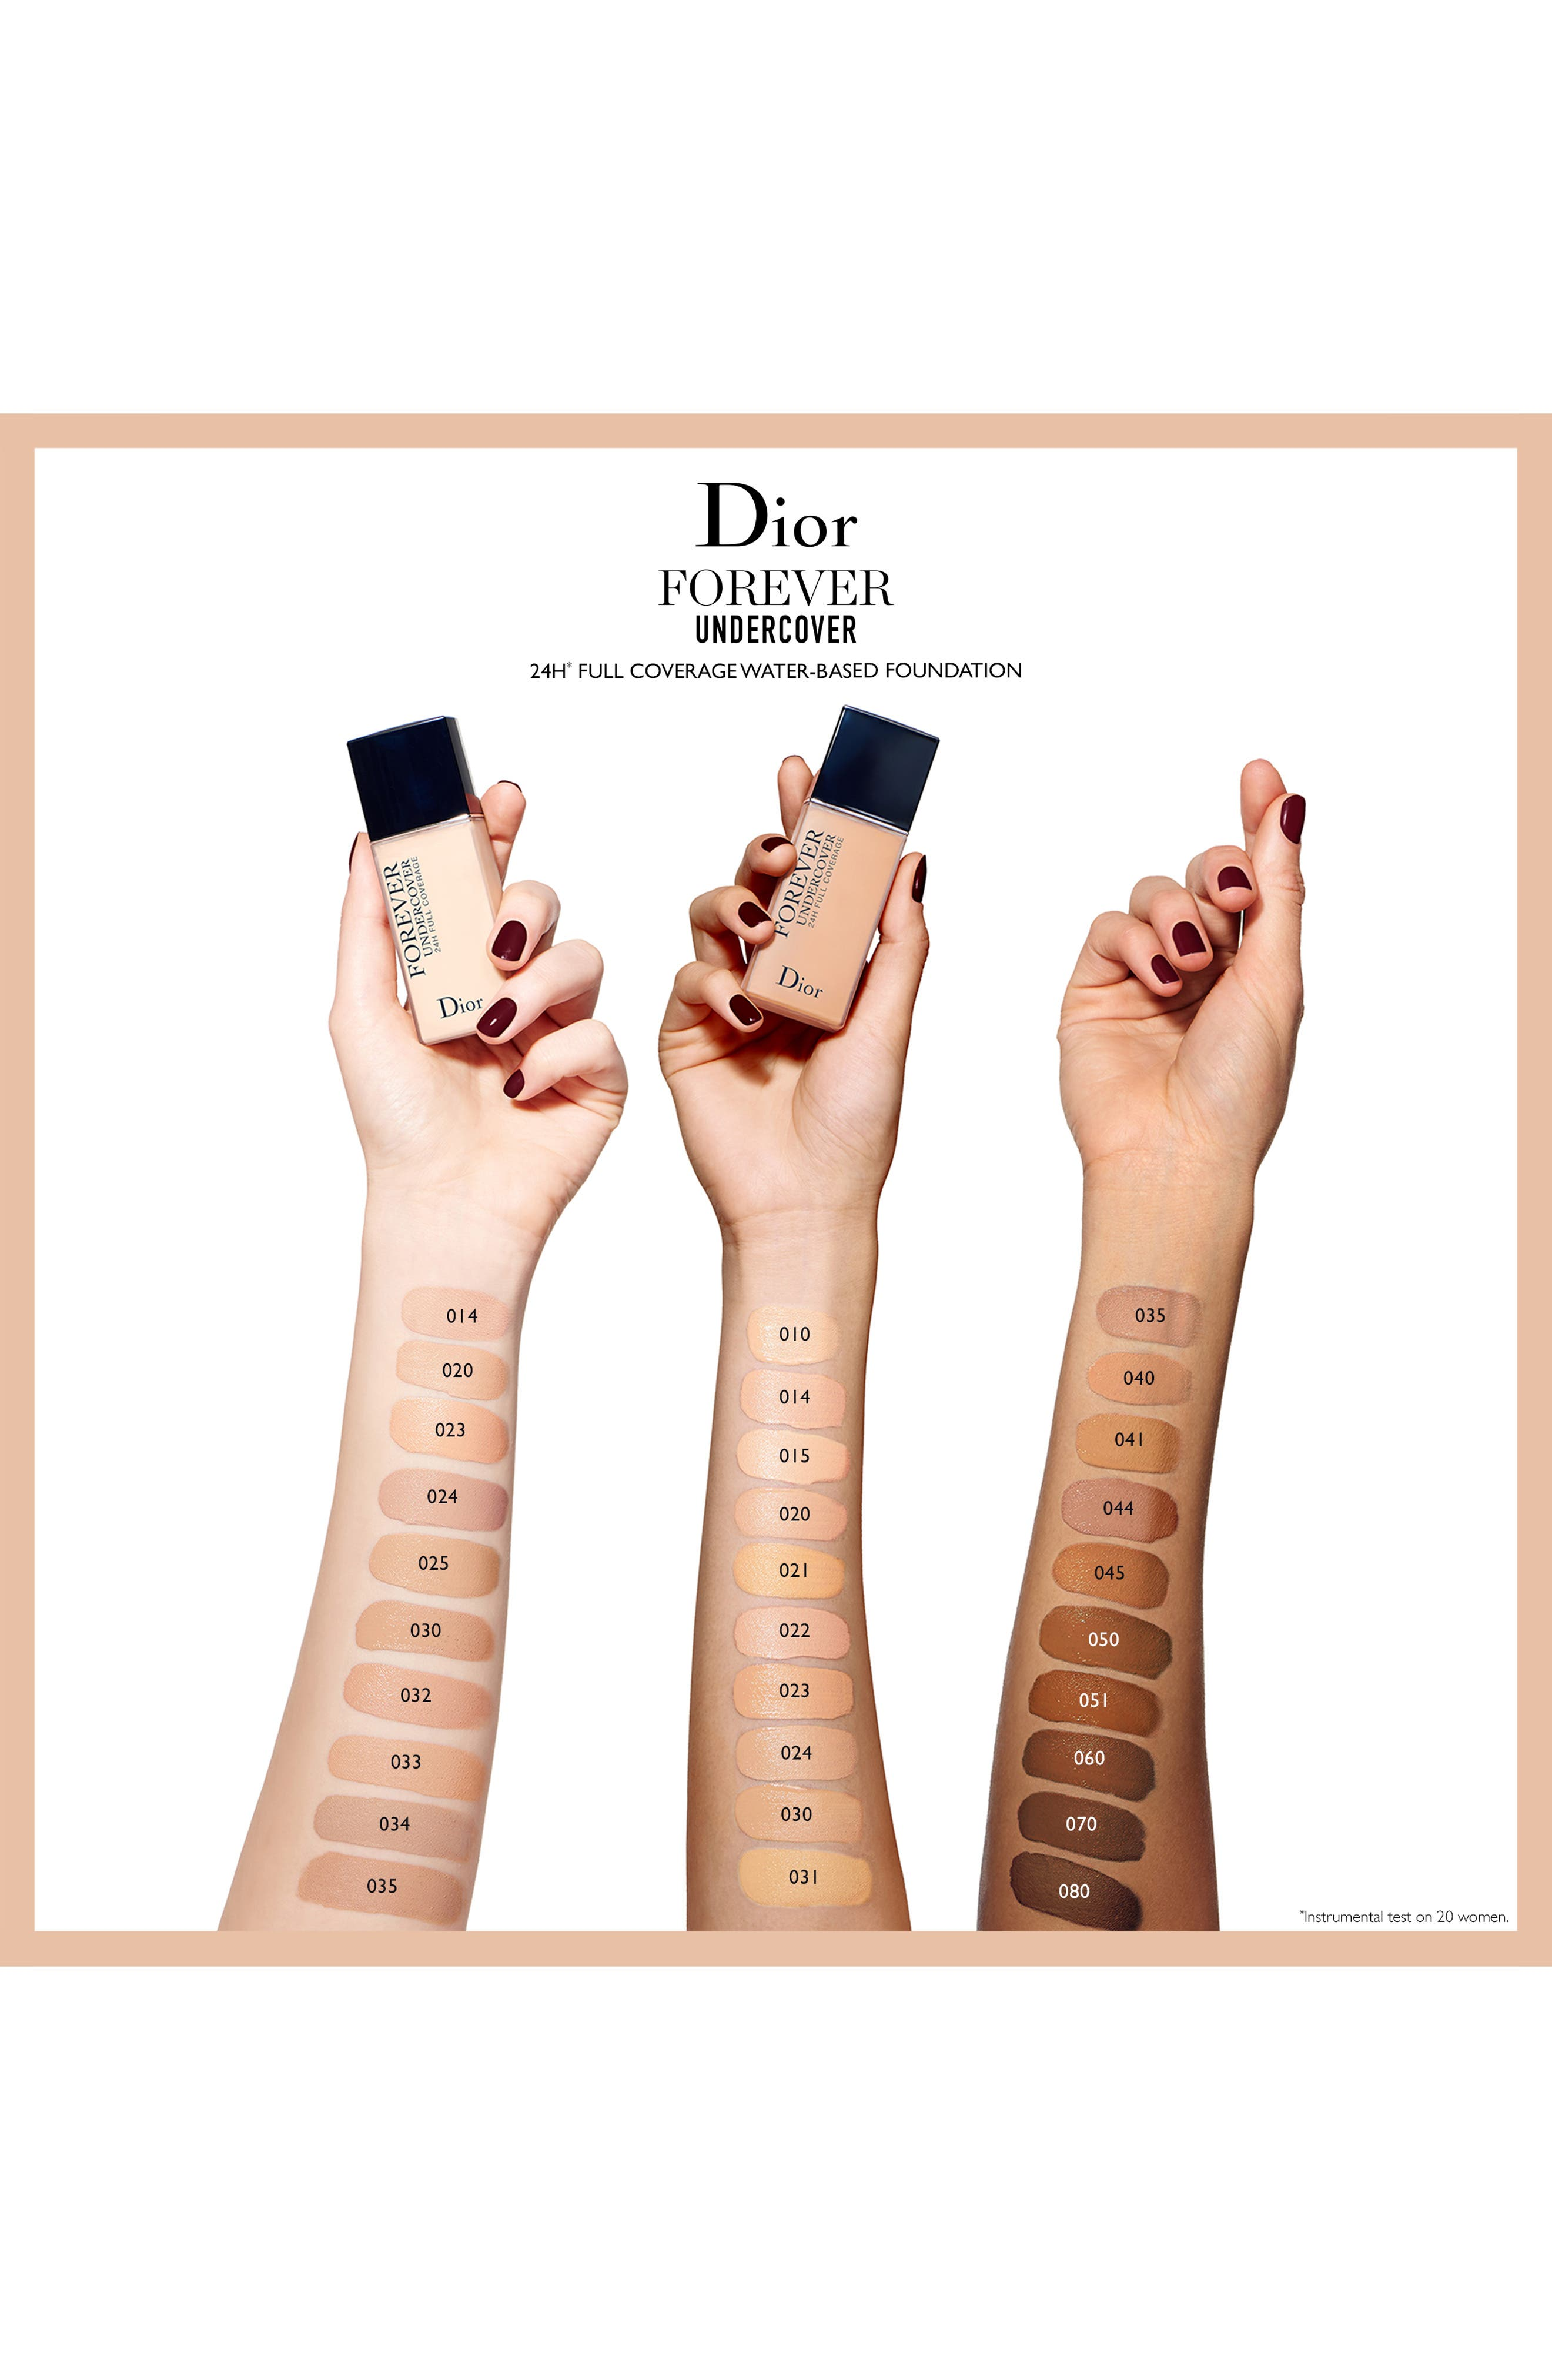 DIOR, Diorskin Forever Undercover 24-Hour Full Coverage Water-Based Foundation, Alternate thumbnail 5, color, 051 PRALINE